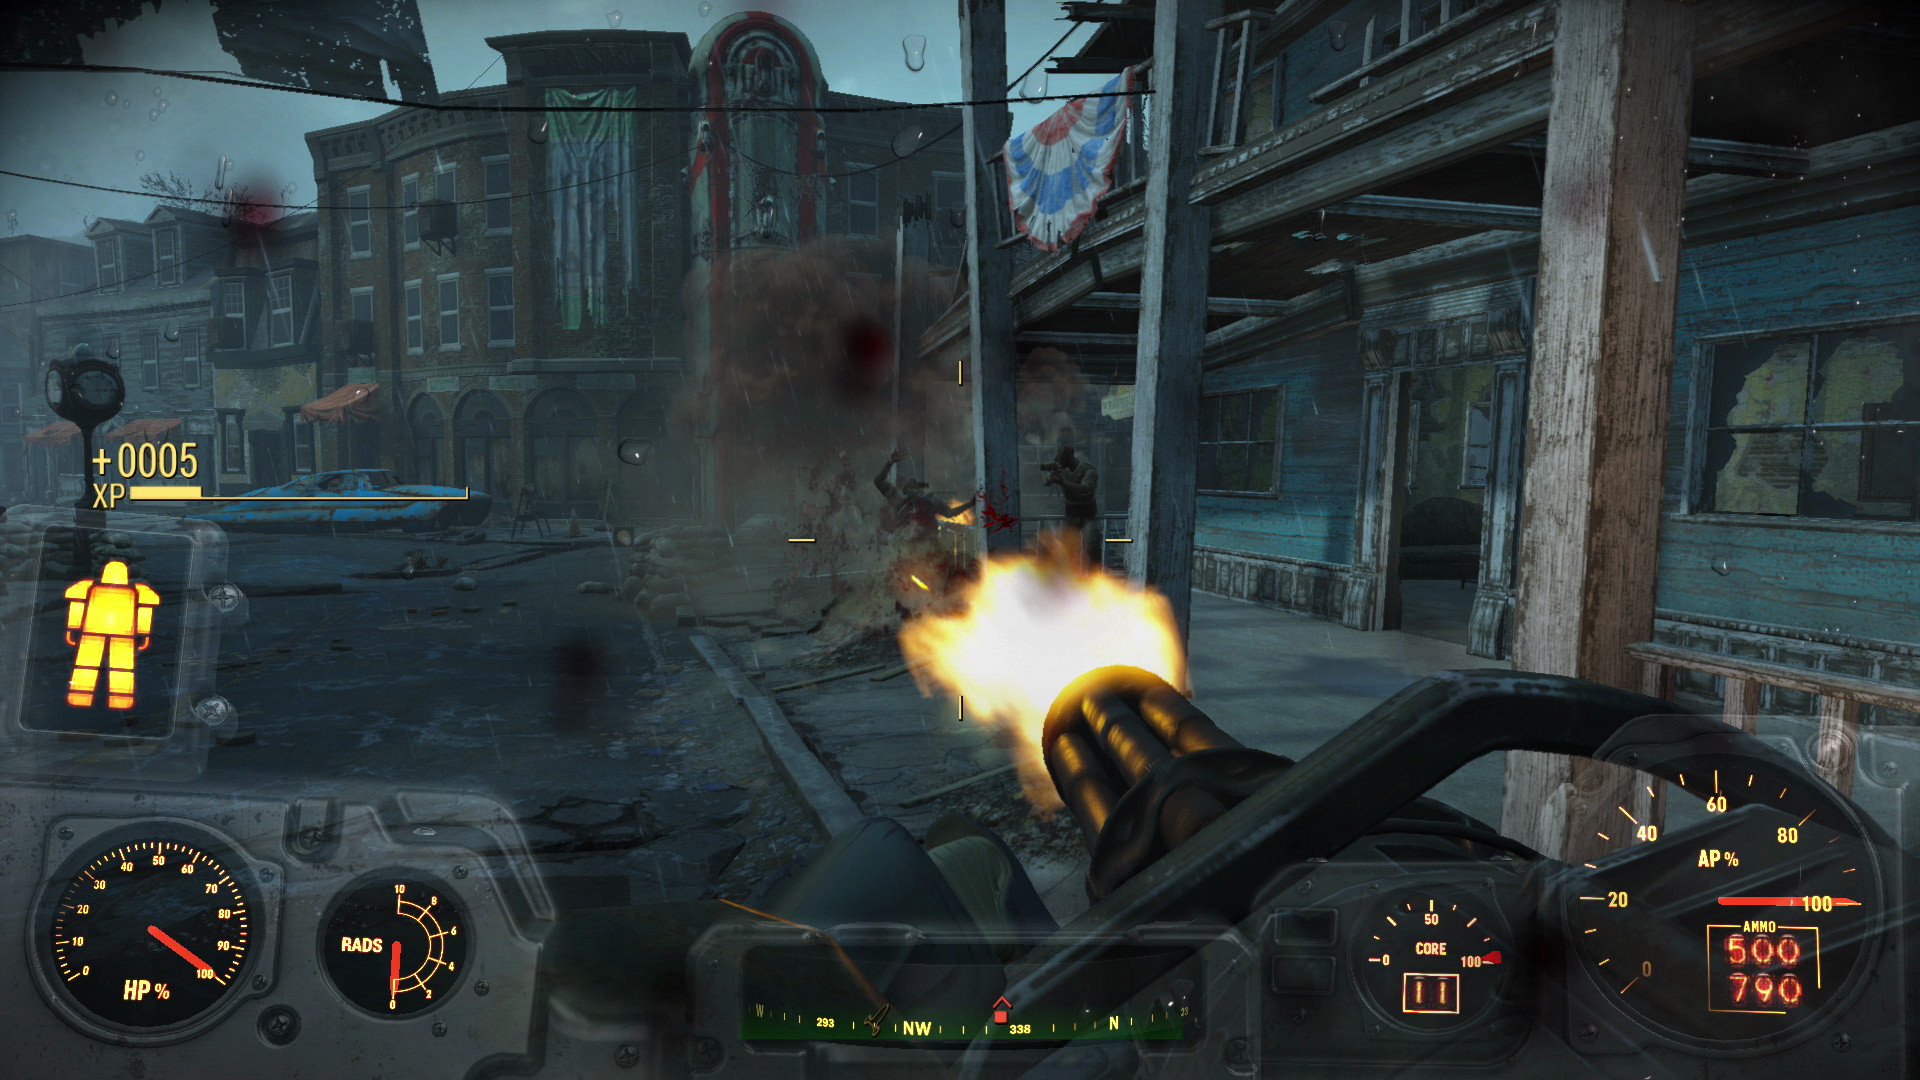 Fallout 4 review: War never changes, and that's just fine